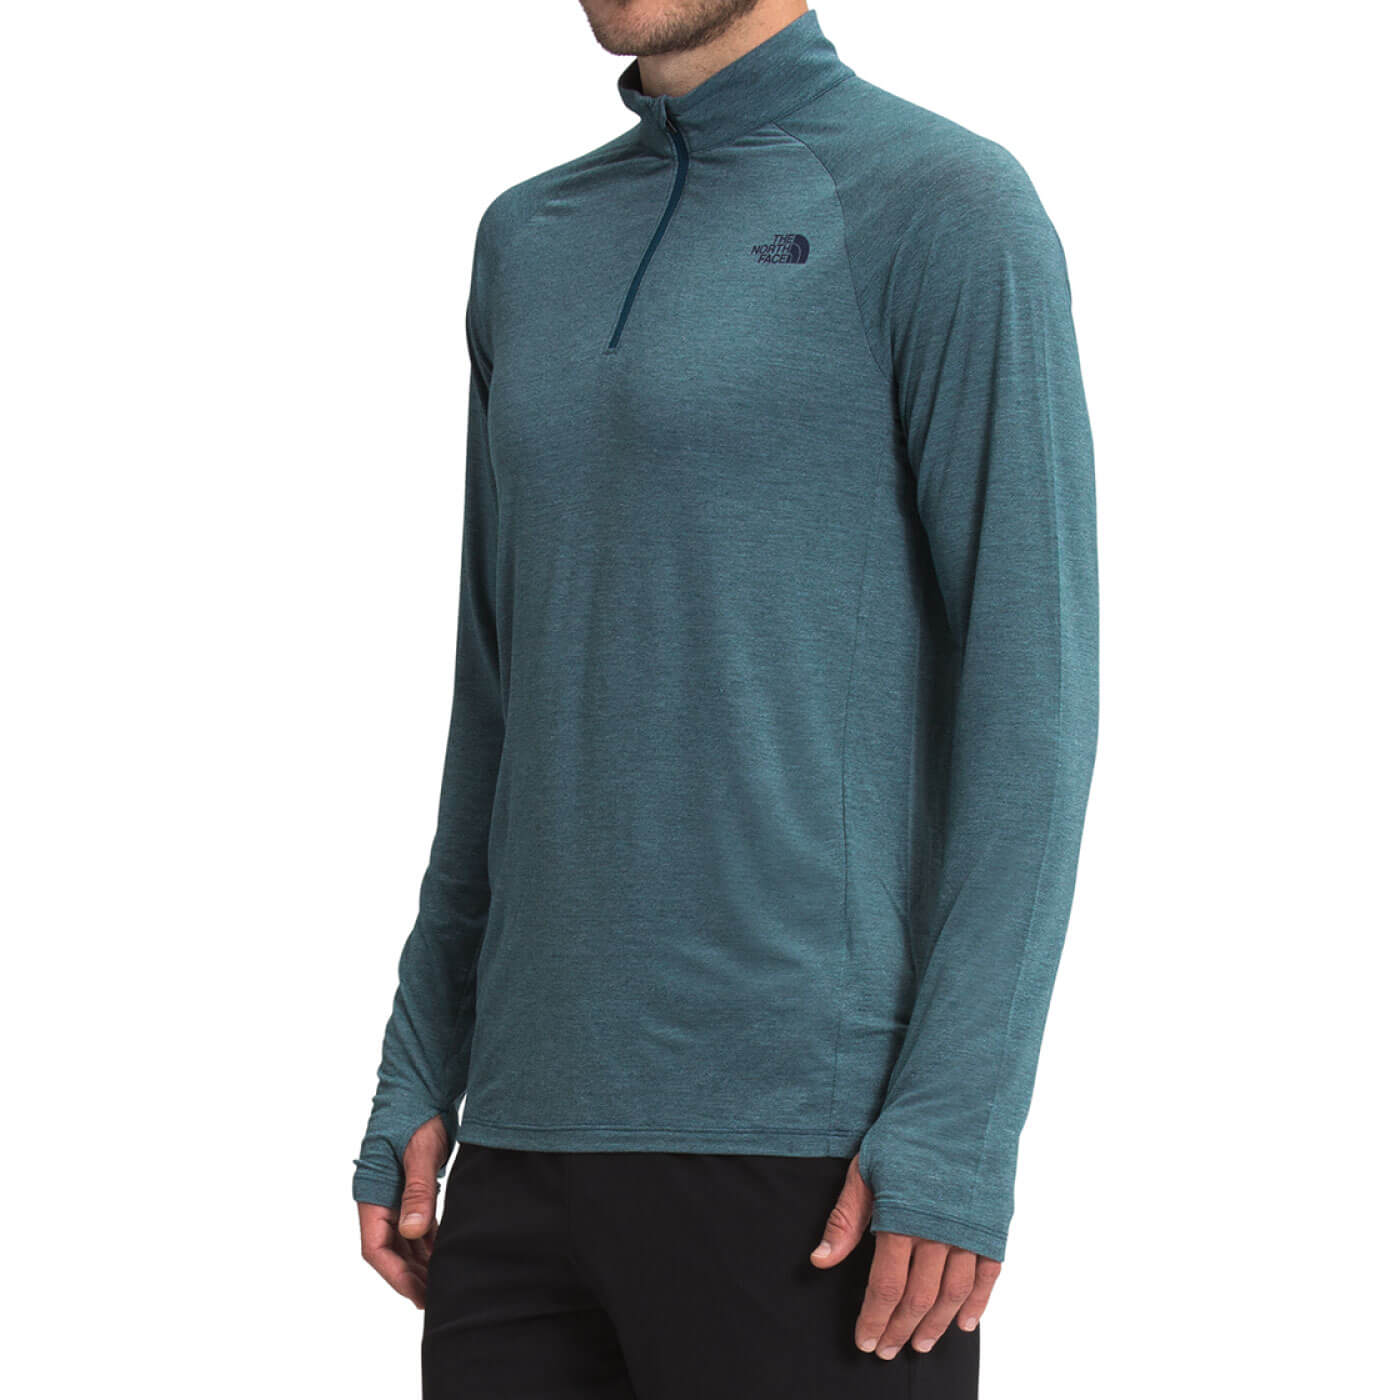 The North Face Men's Wander 1/4 Zip